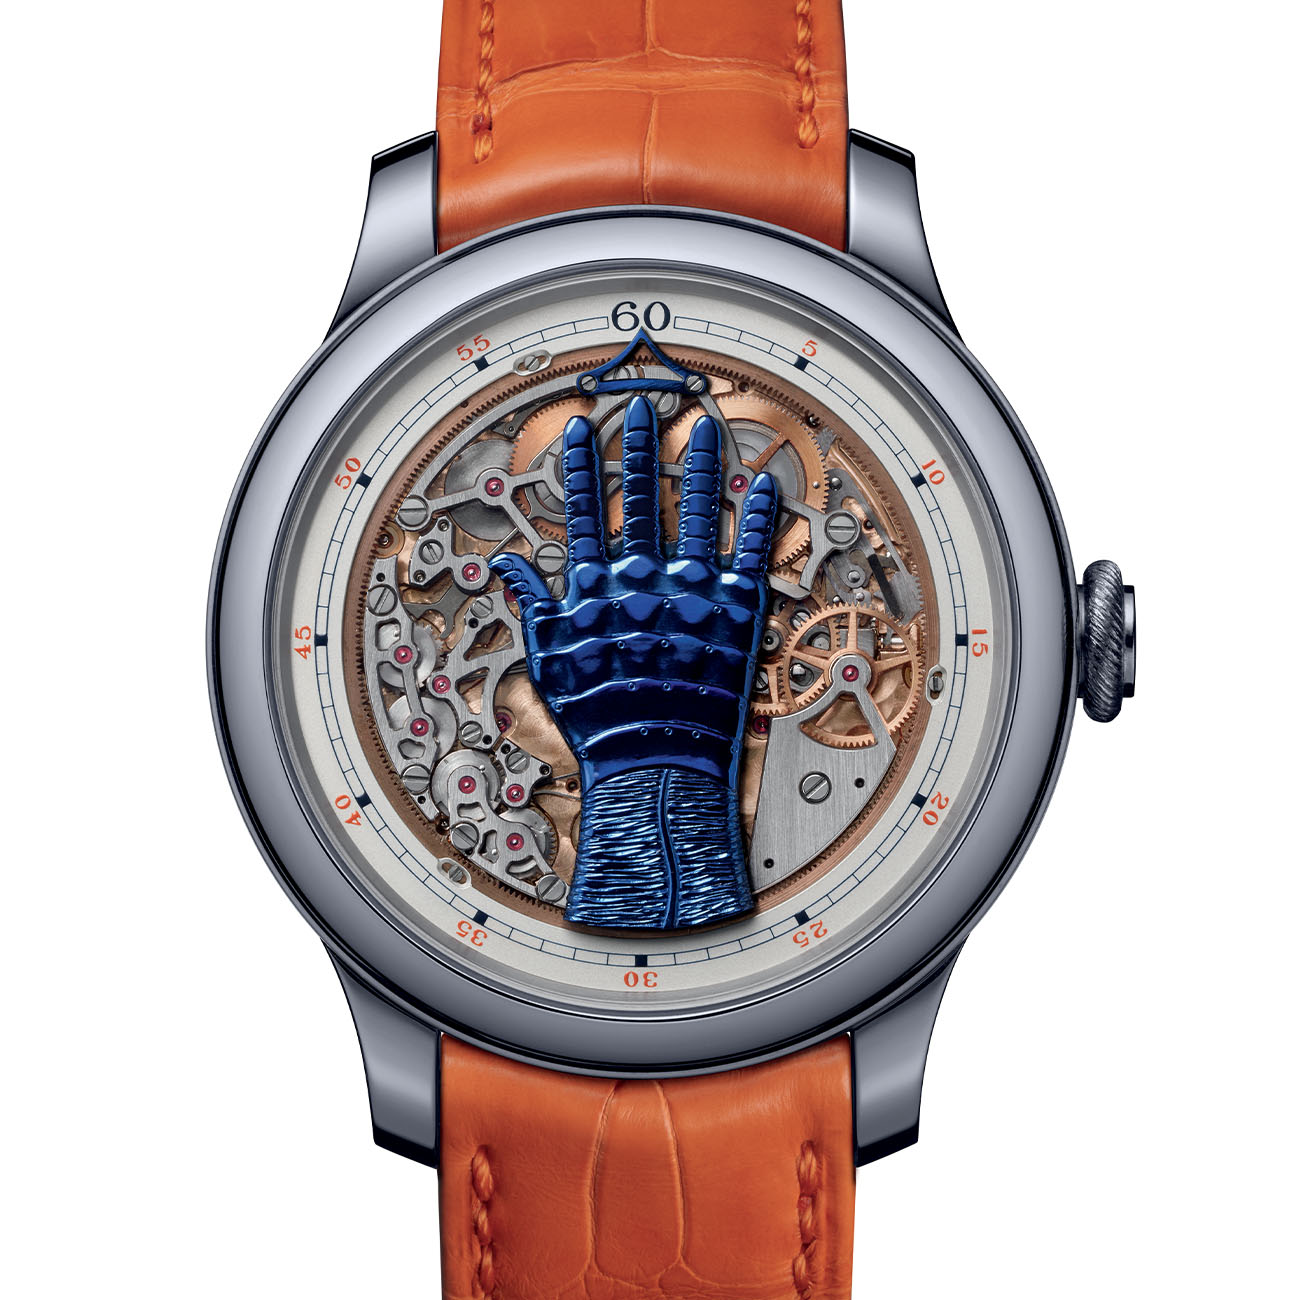 FP Journe only watch 2021